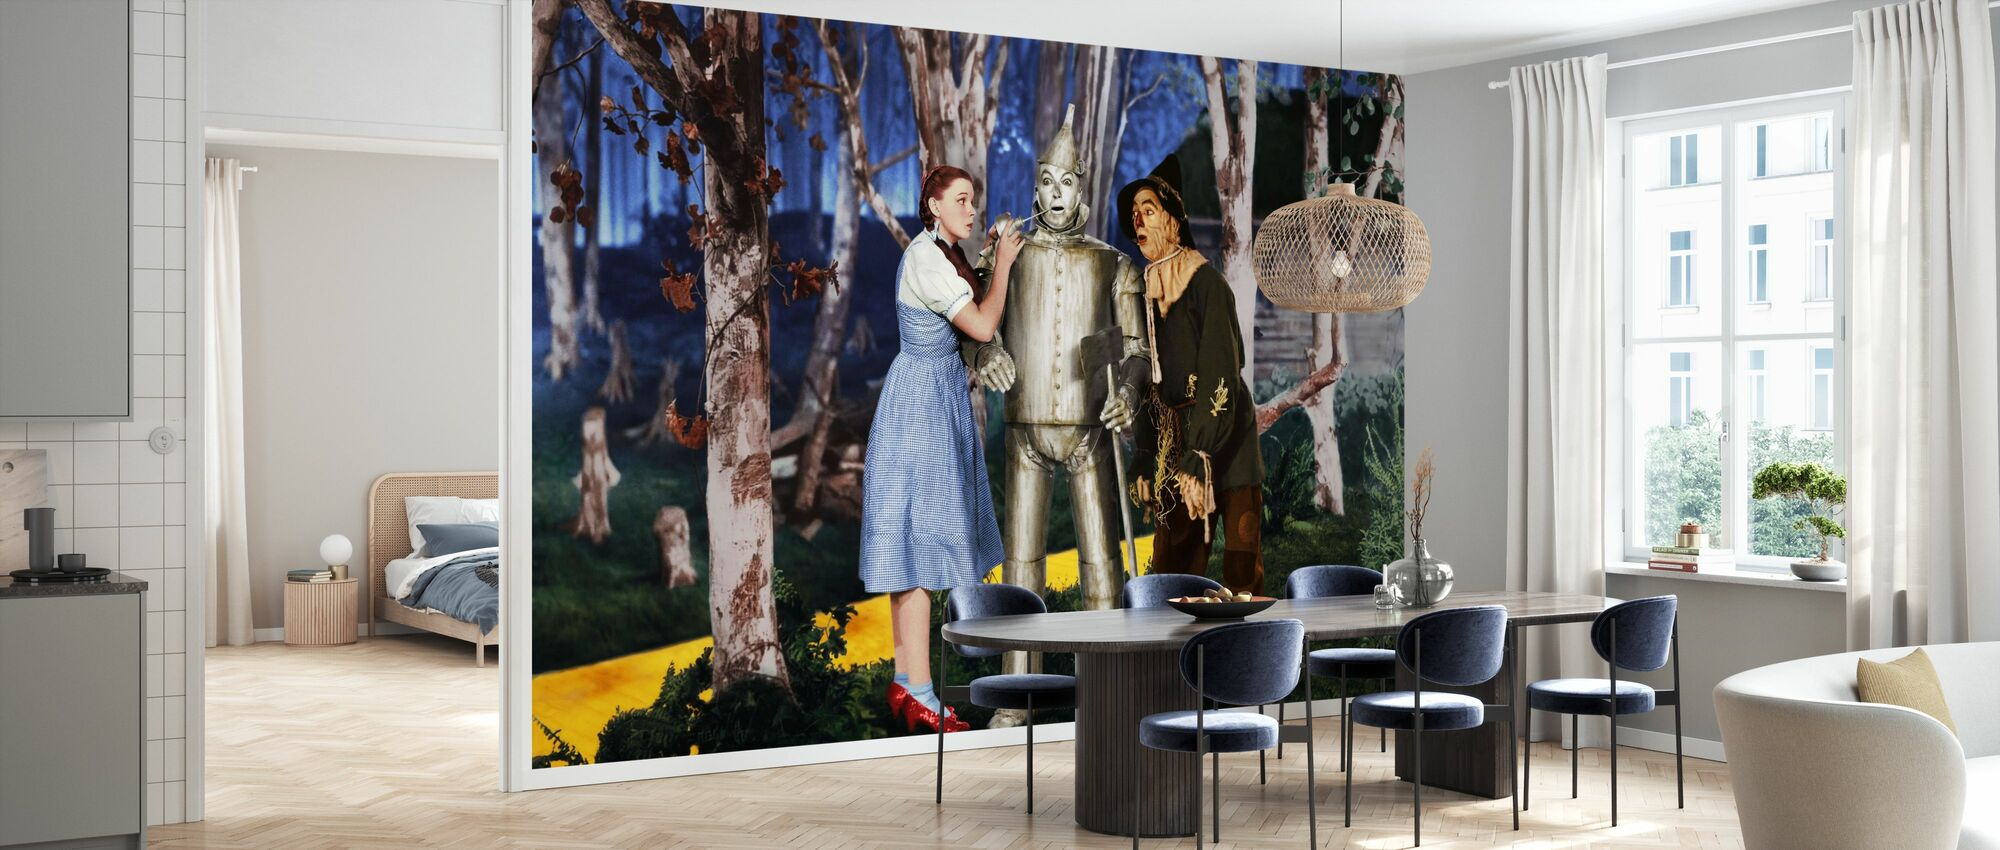 Wizard of Oz - Jack Haley Judy Garland and Ray Bolger - Wallpaper - Kitchen